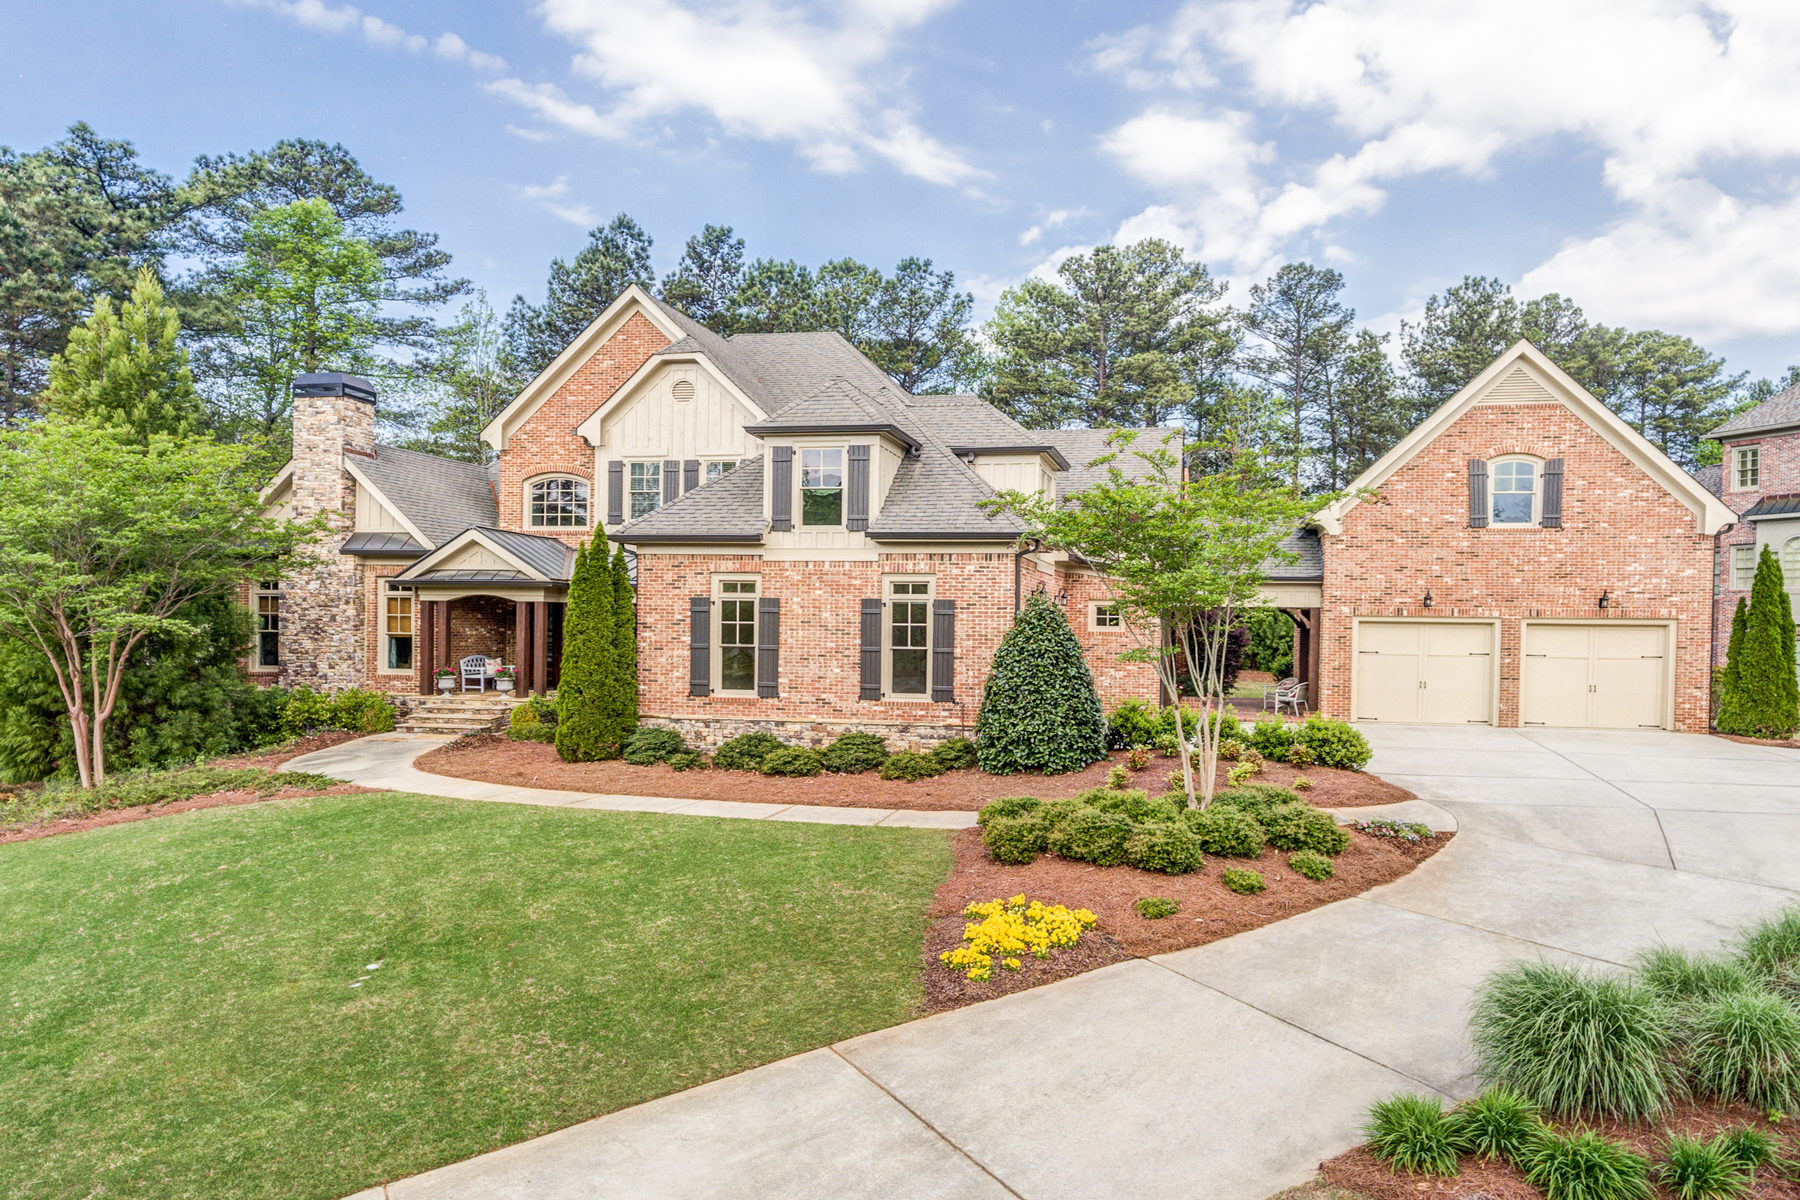 Casa Unifamiliar por un Venta en Custom Elegance, Luxury Living 4367 Oglethorpe Loop Acworth, Georgia, 30101 Estados Unidos